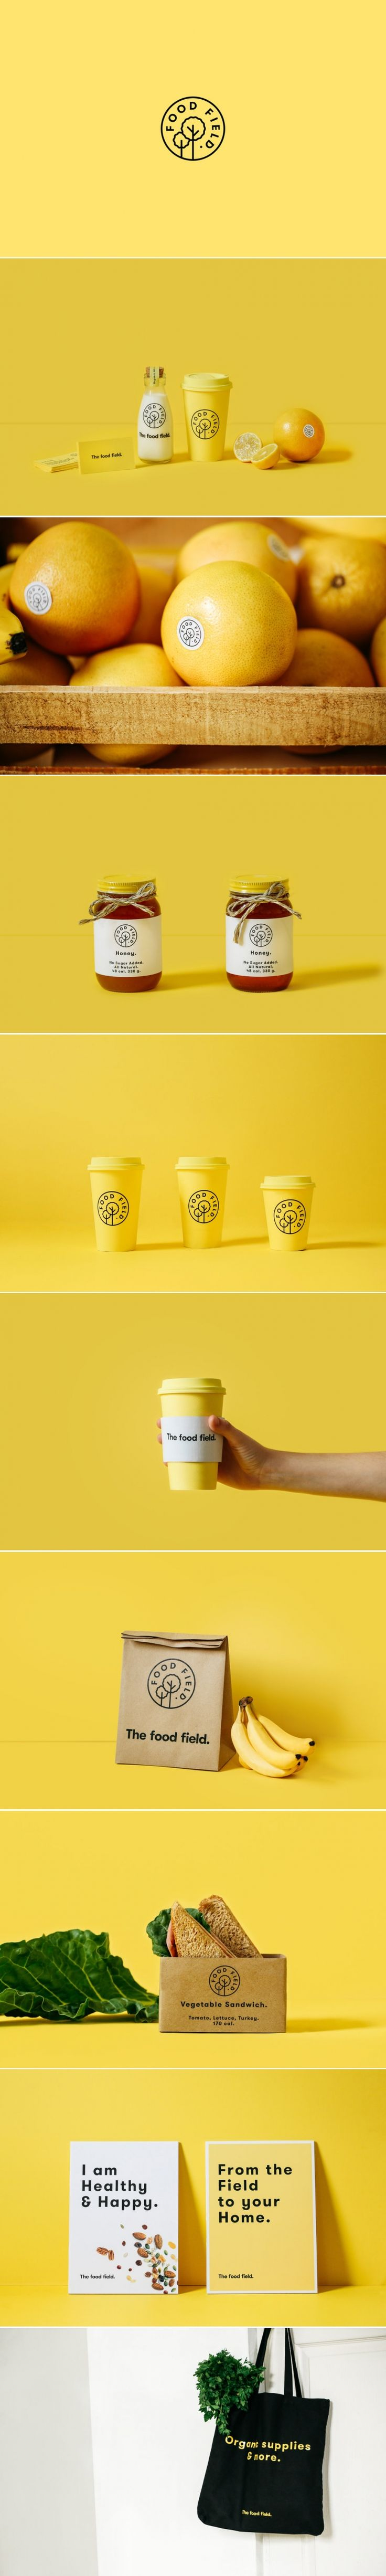 The Food Field — The Dieline - Branding & Packaging Design http://jrstudioweb.com/diseno-grafico/diseno-de-logotipos/